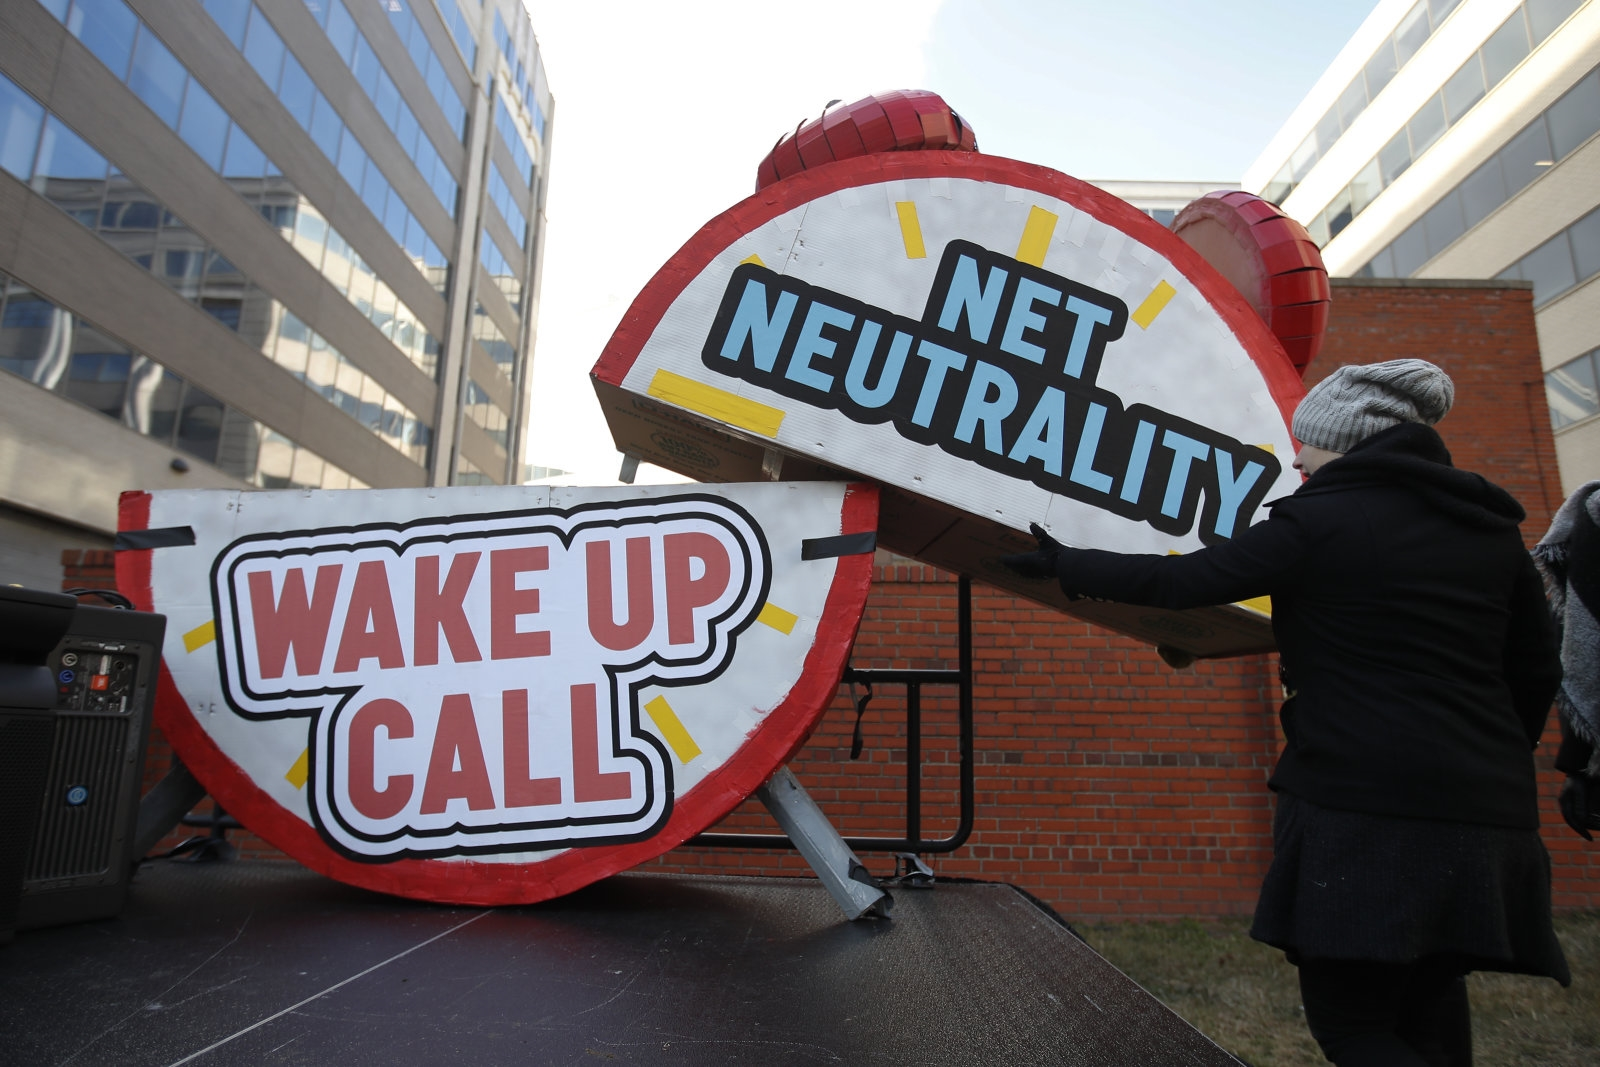 House Democrats will introduce bill to reinstate net neutrality rules | DeviceDaily.com